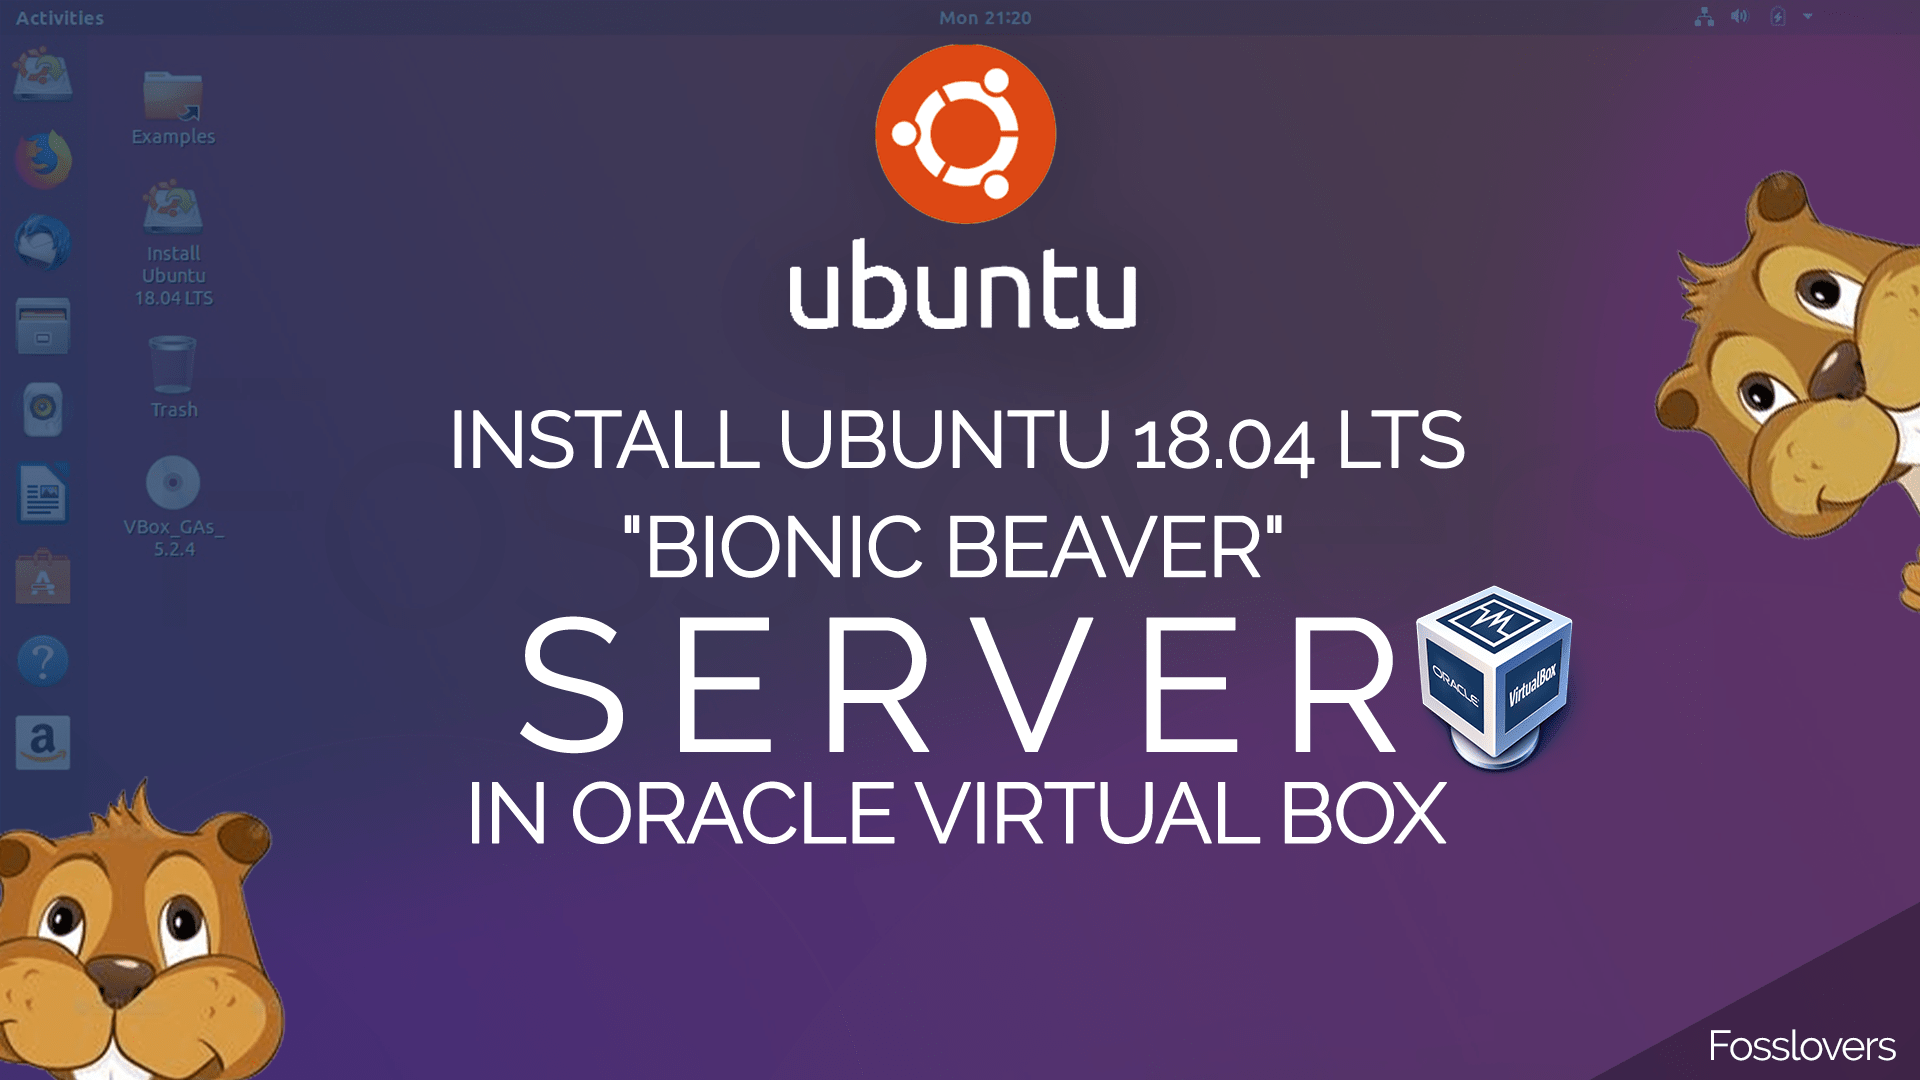 Install-ubuntu-18.04-LTS-Bionic-Beaver-Server-in-Oracle-Virtual-Box